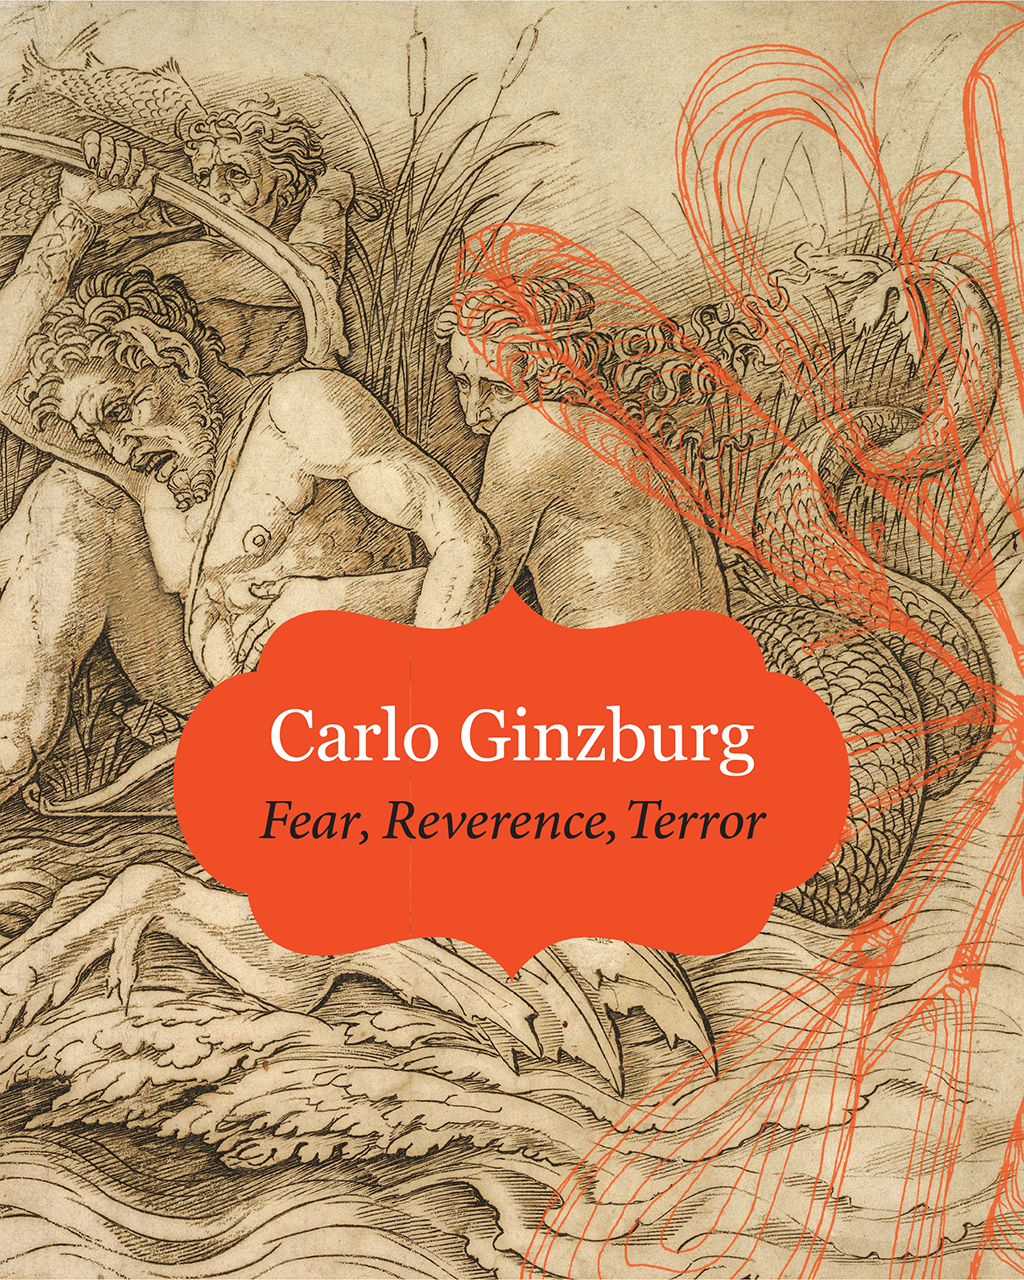 Book cover of Fear, Reverence, Terror by Carlo Ginzburg.